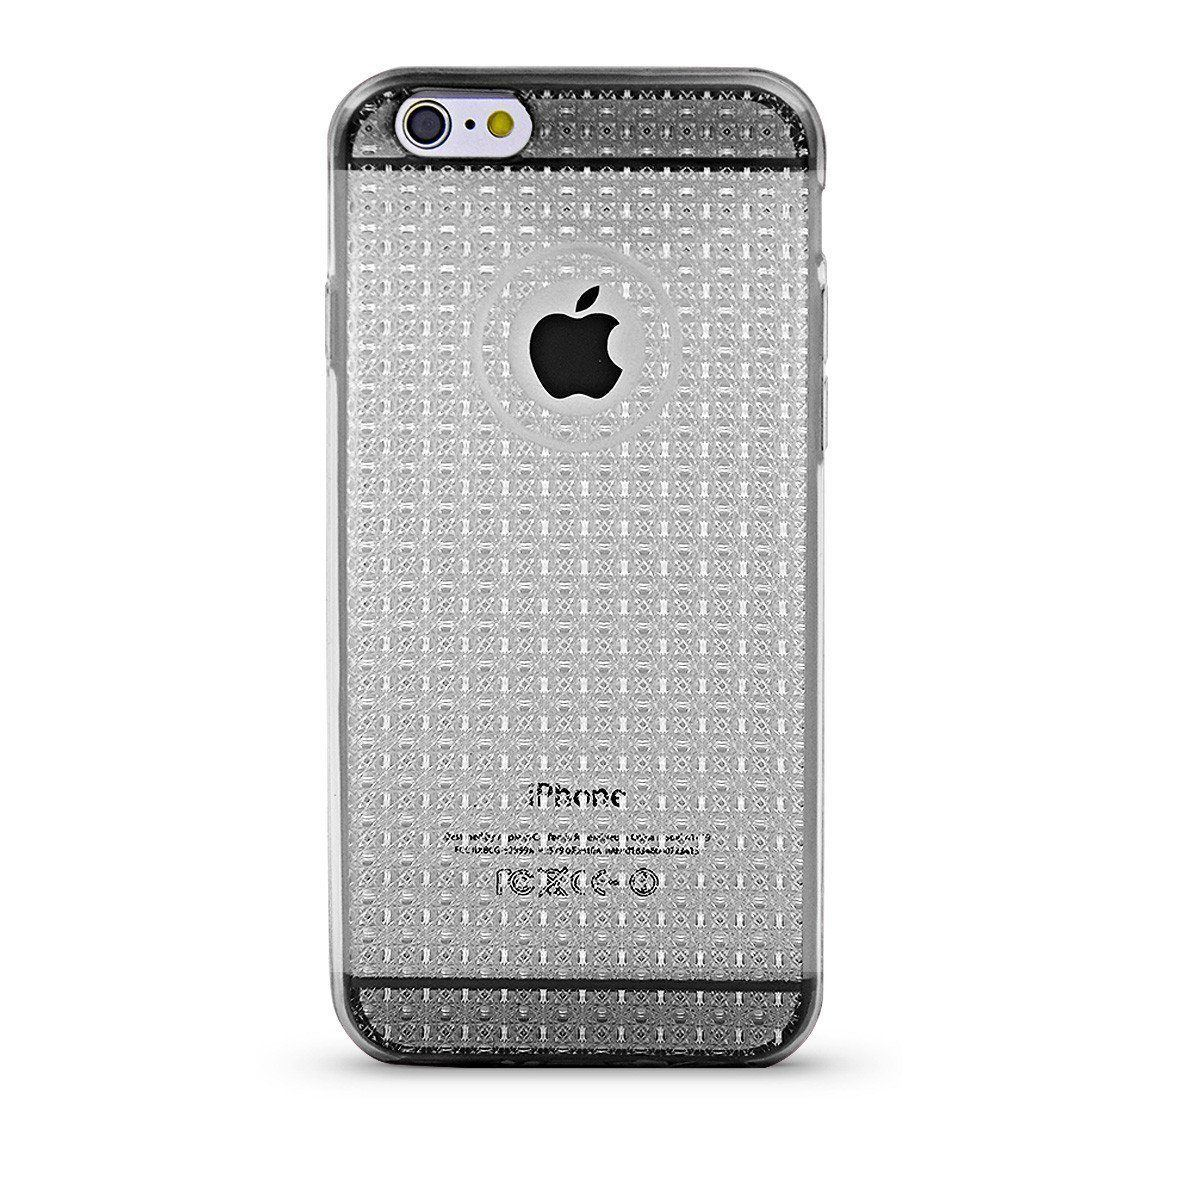 Zoot Case for iPhone 6 - Black